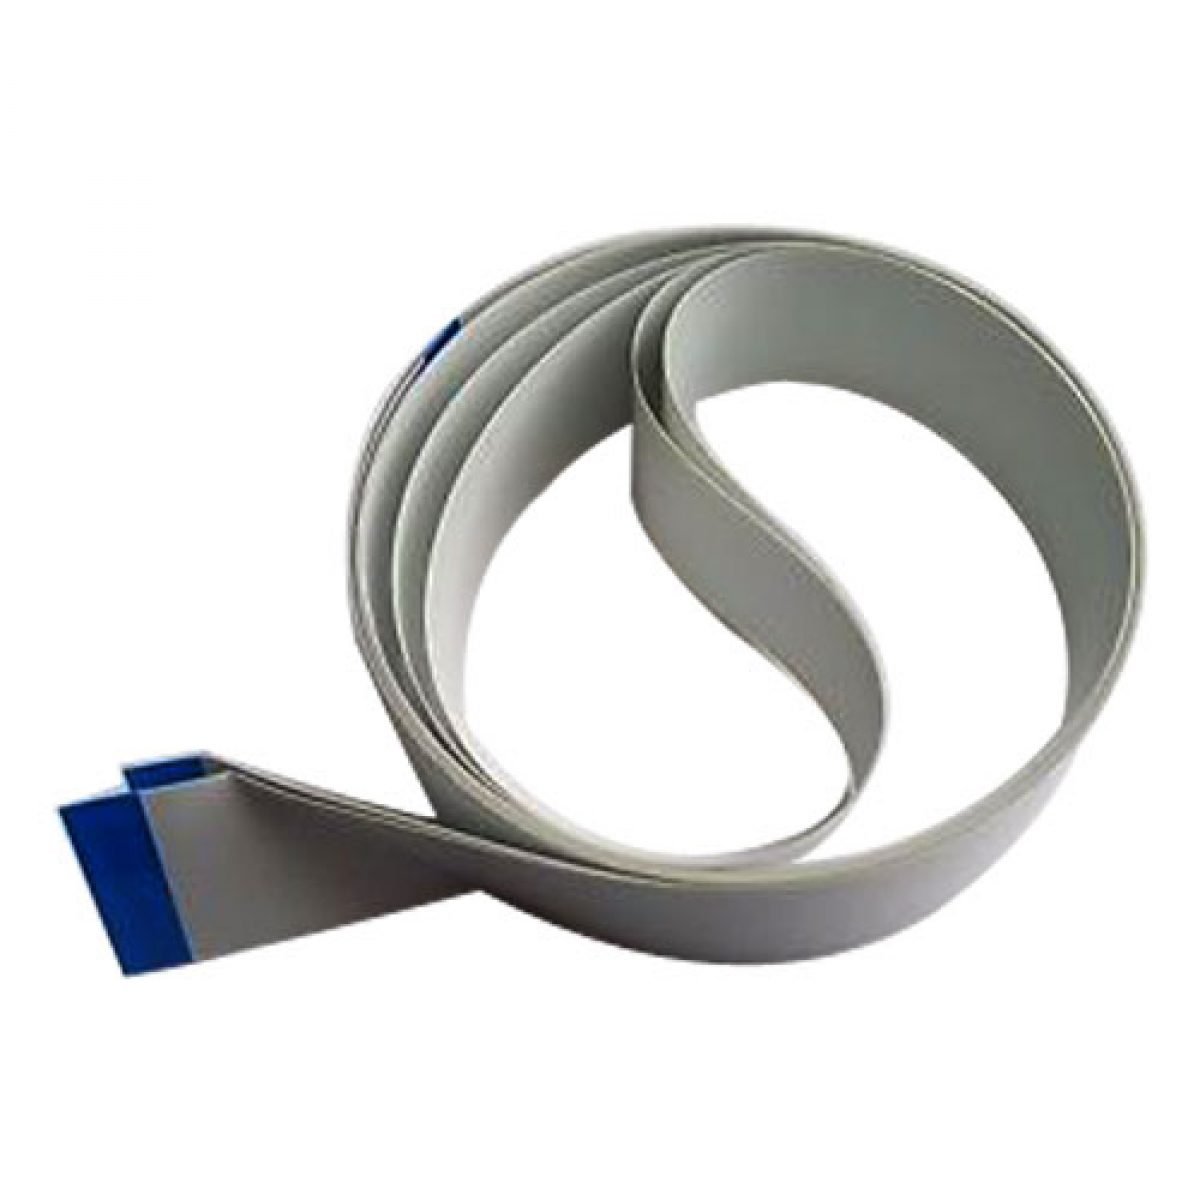 Printer Parts Compatible New 24 inch Trailing Cable for HP T1100 HP T610 HP Z2100 HP Z3100 Q5669-60681 2 Sets per lot